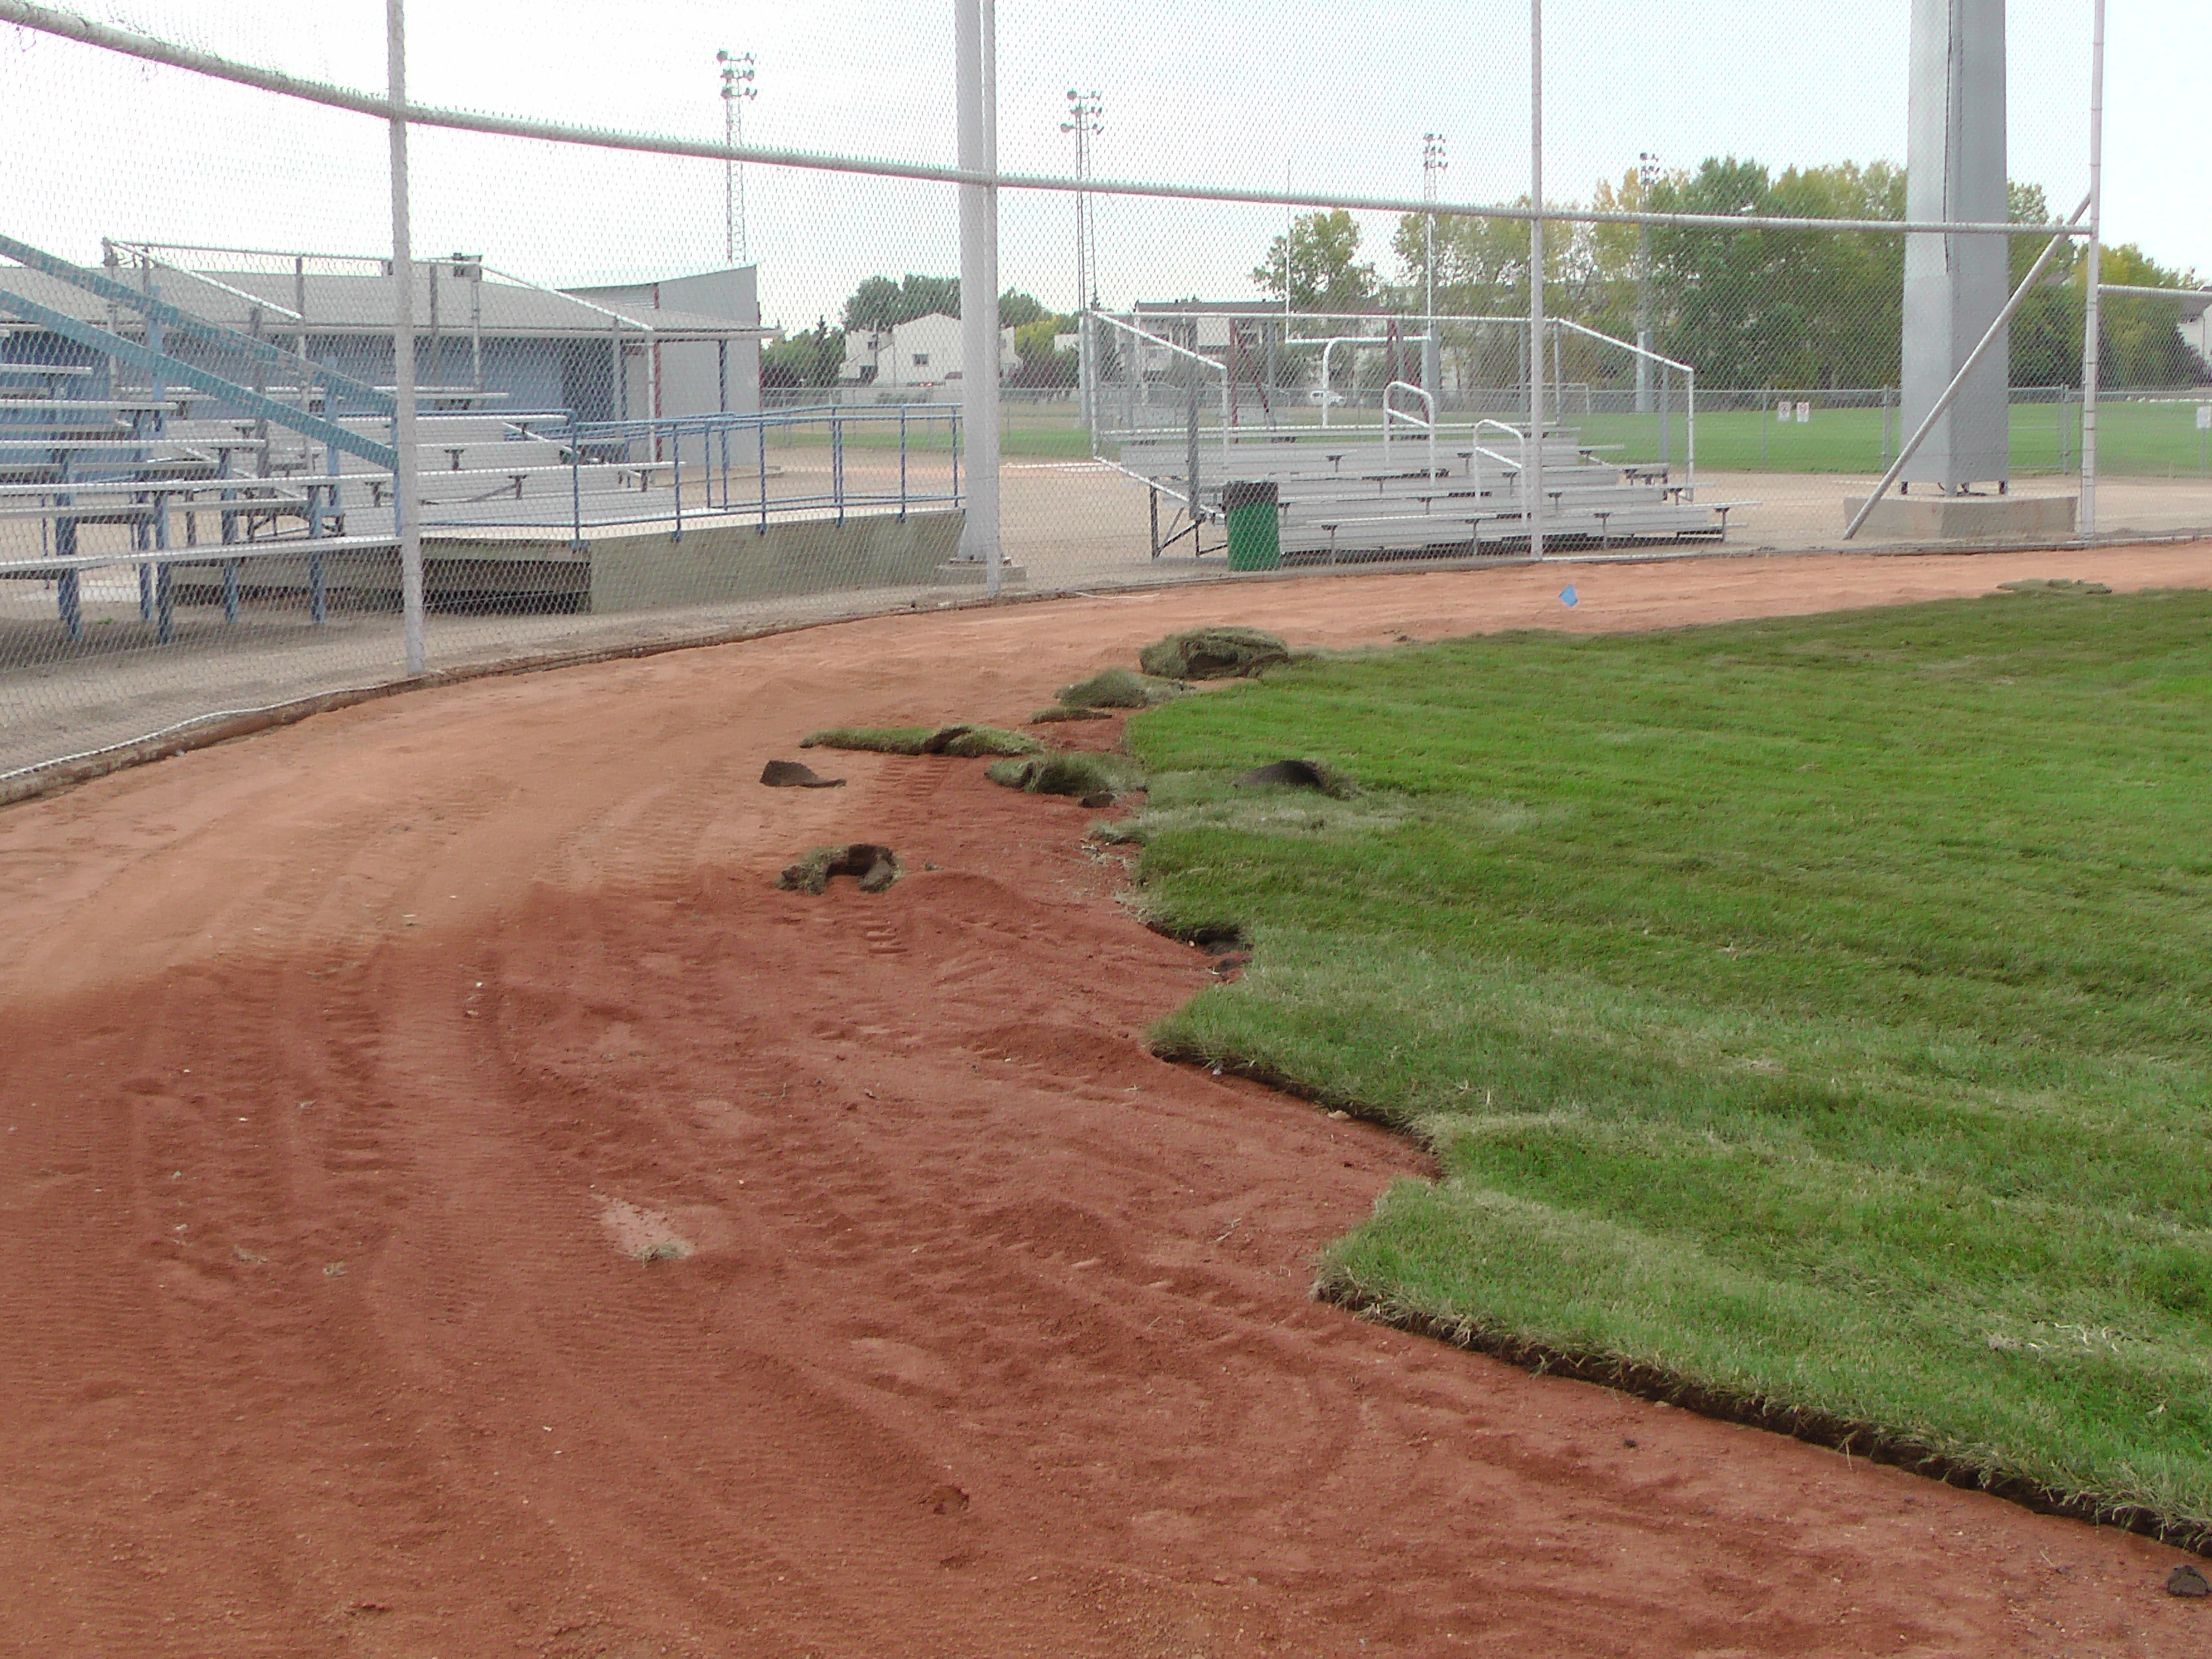 Sept 7 & 8 2018, Optimist Park Field Renovations, sod down being watered - Image 16